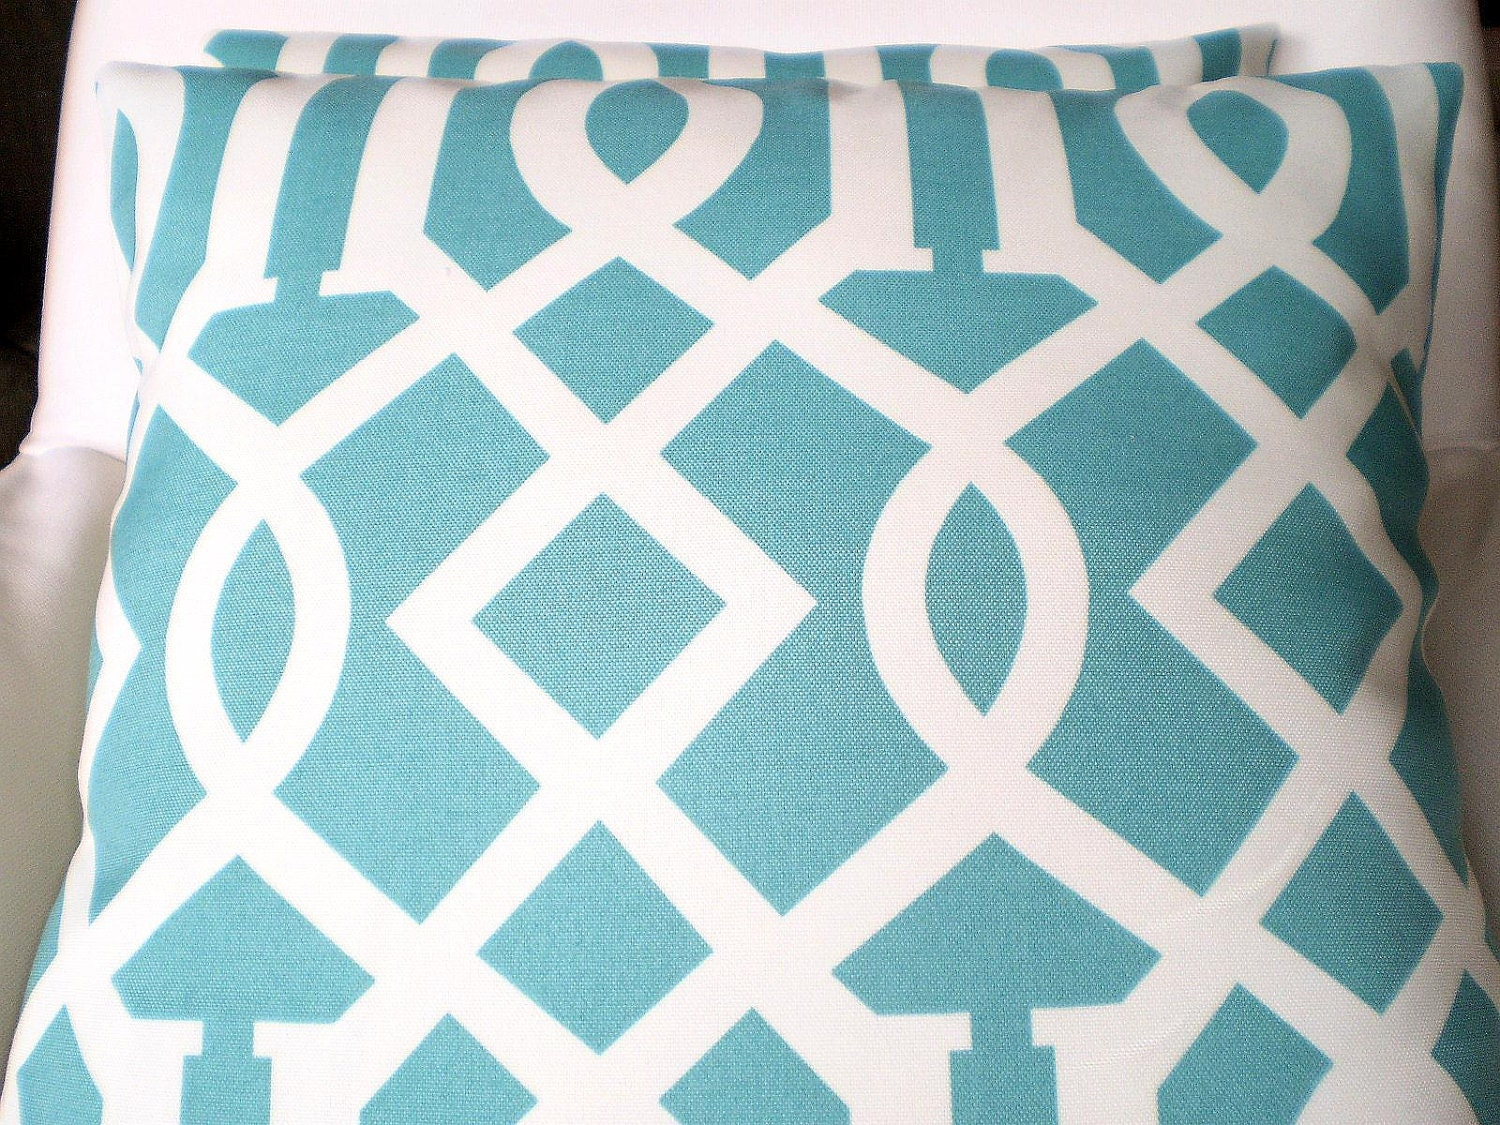 OUTDOOR Pillows Decorative Throw Pillows Cushion Covers Turquoise Cream Trellis Indoor Outdoor ...